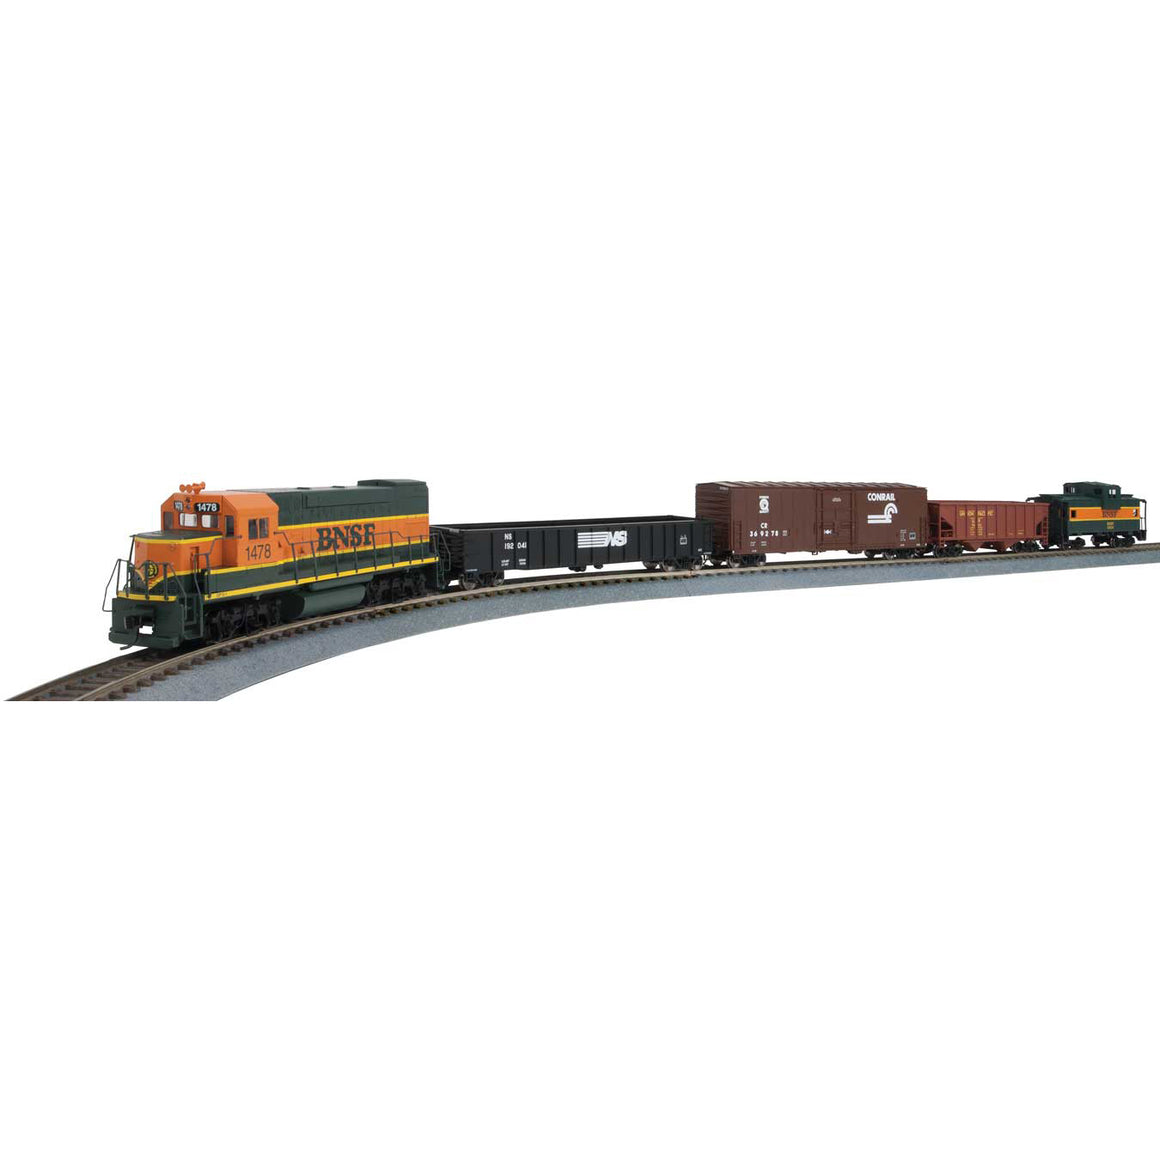 HO Scale: Flyer Express Train Set - DC - BNSF